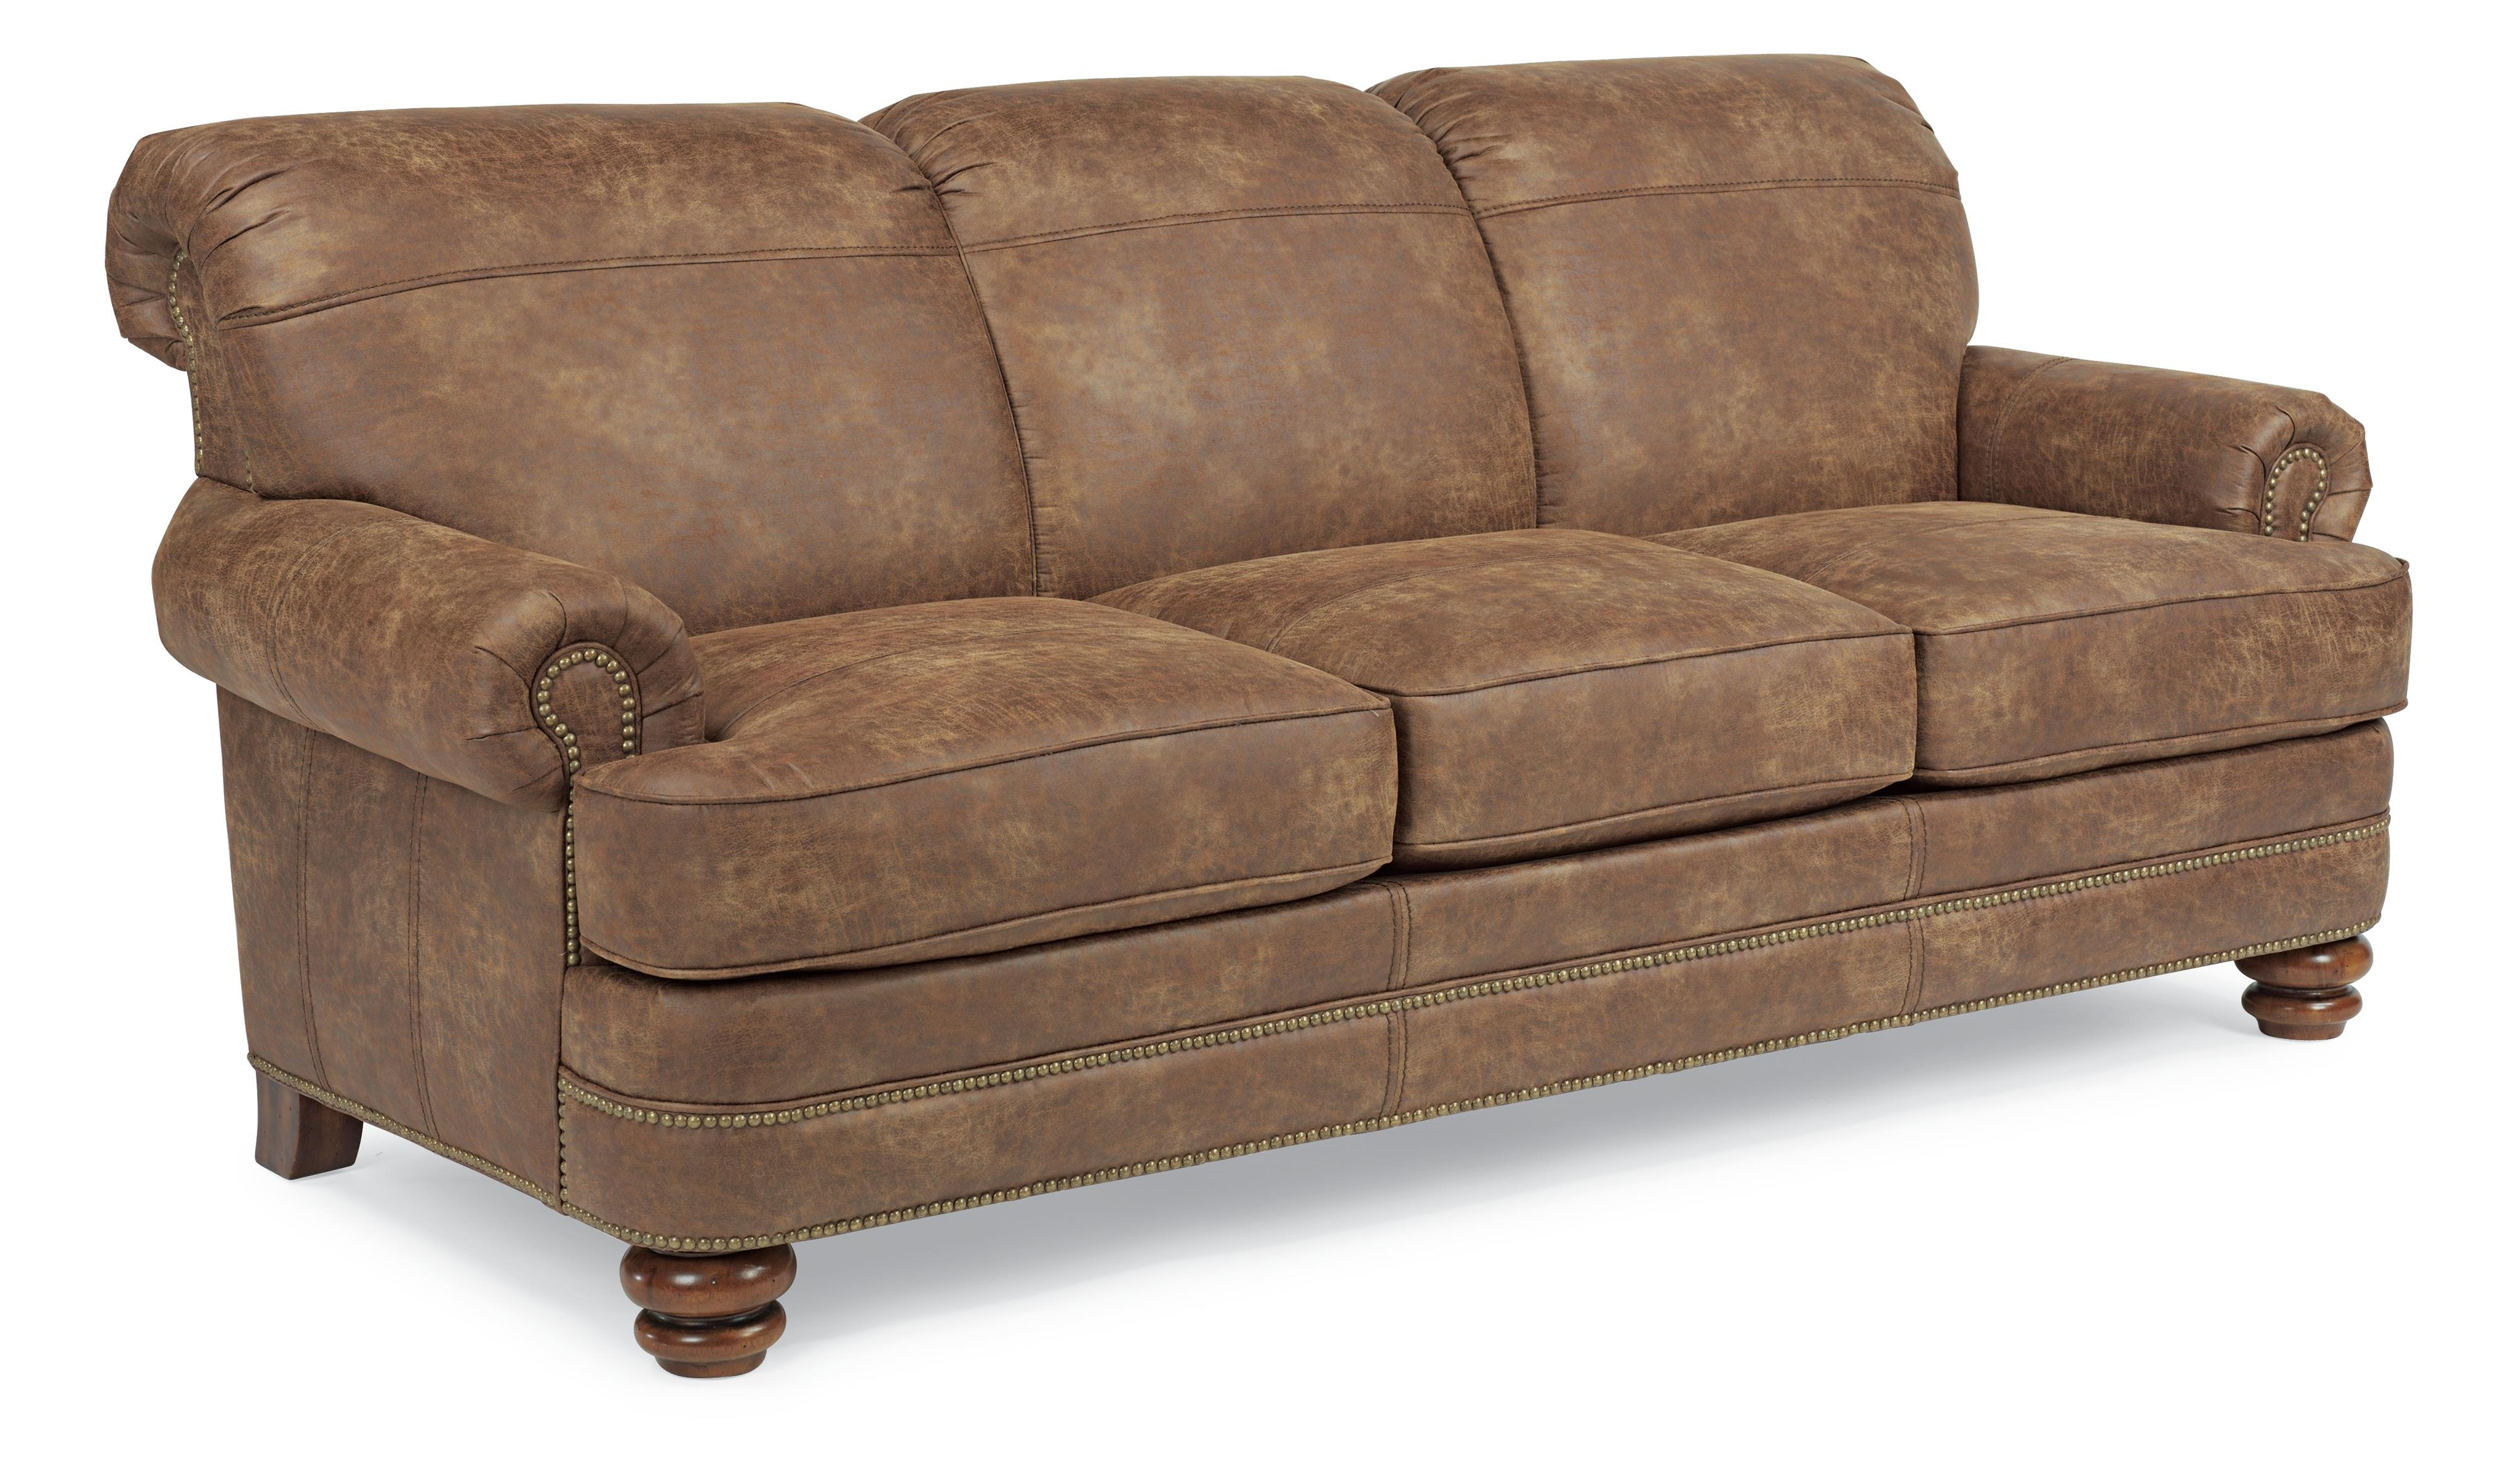 Flexsteel Bay Bridge Traditional Sofa - Item Number: N7791-31-325-54